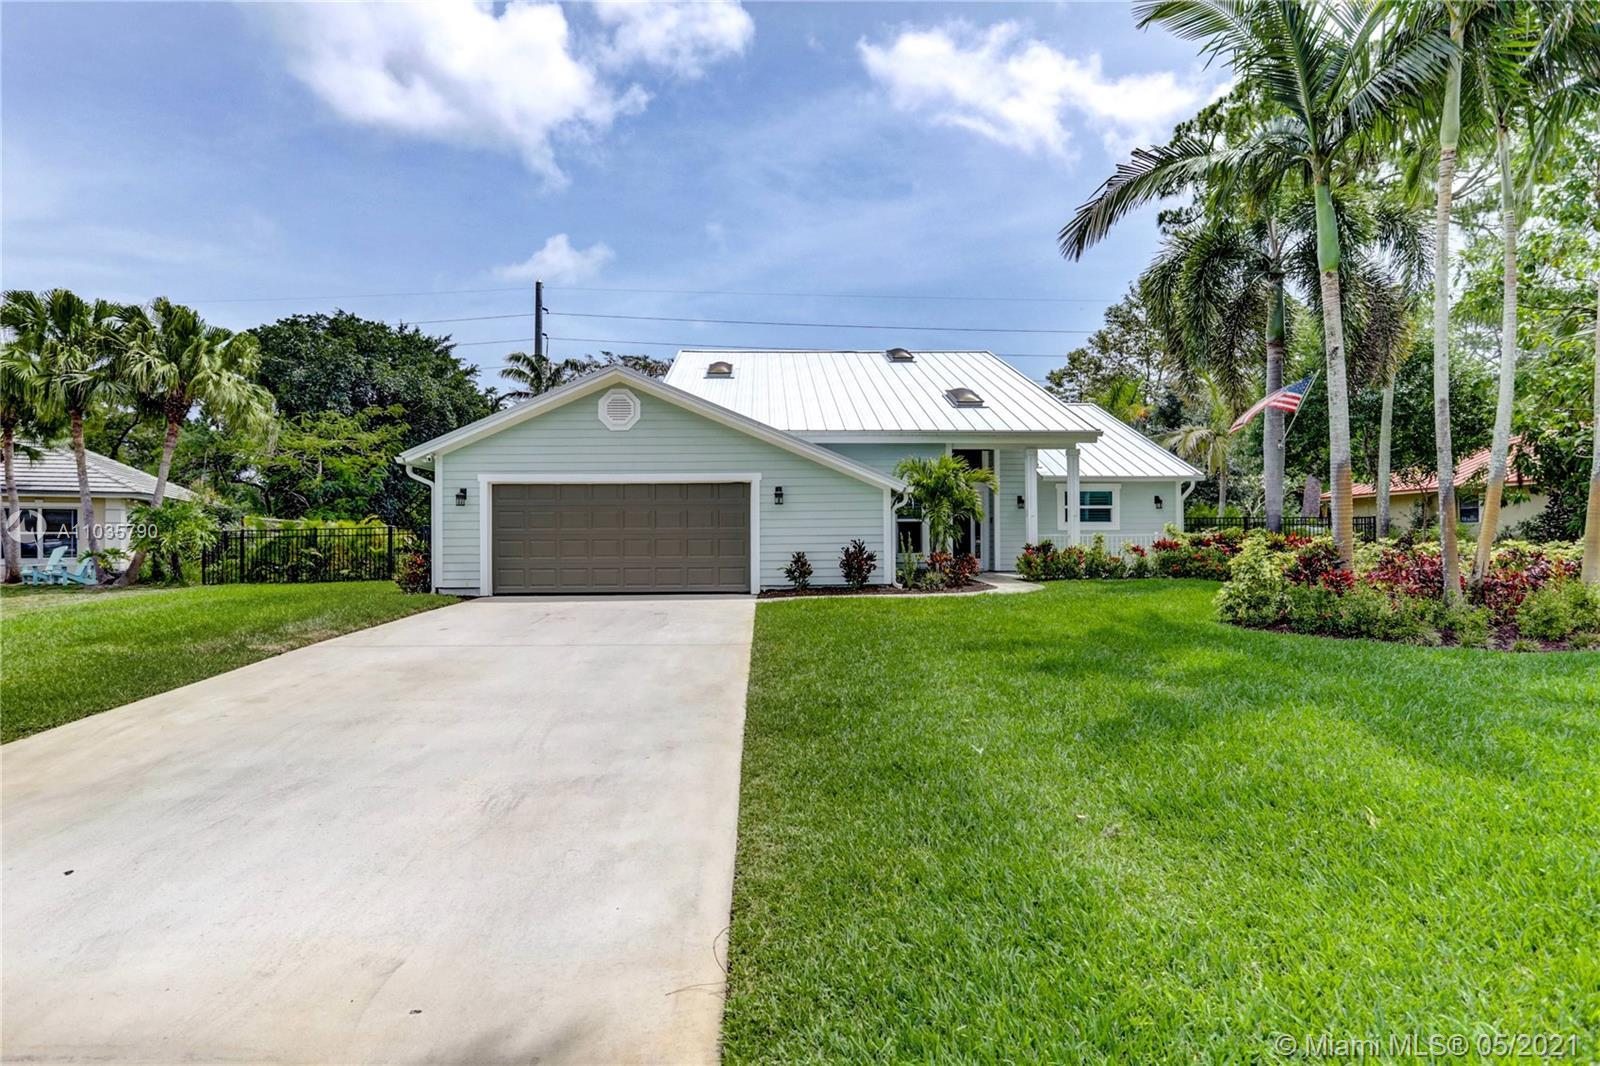 """SPECTACULAR 5 bedroom, 3 bath, TOTALLY RENOVATED Key West Style POOL home in Upscale, """"WHISPERING TR"""